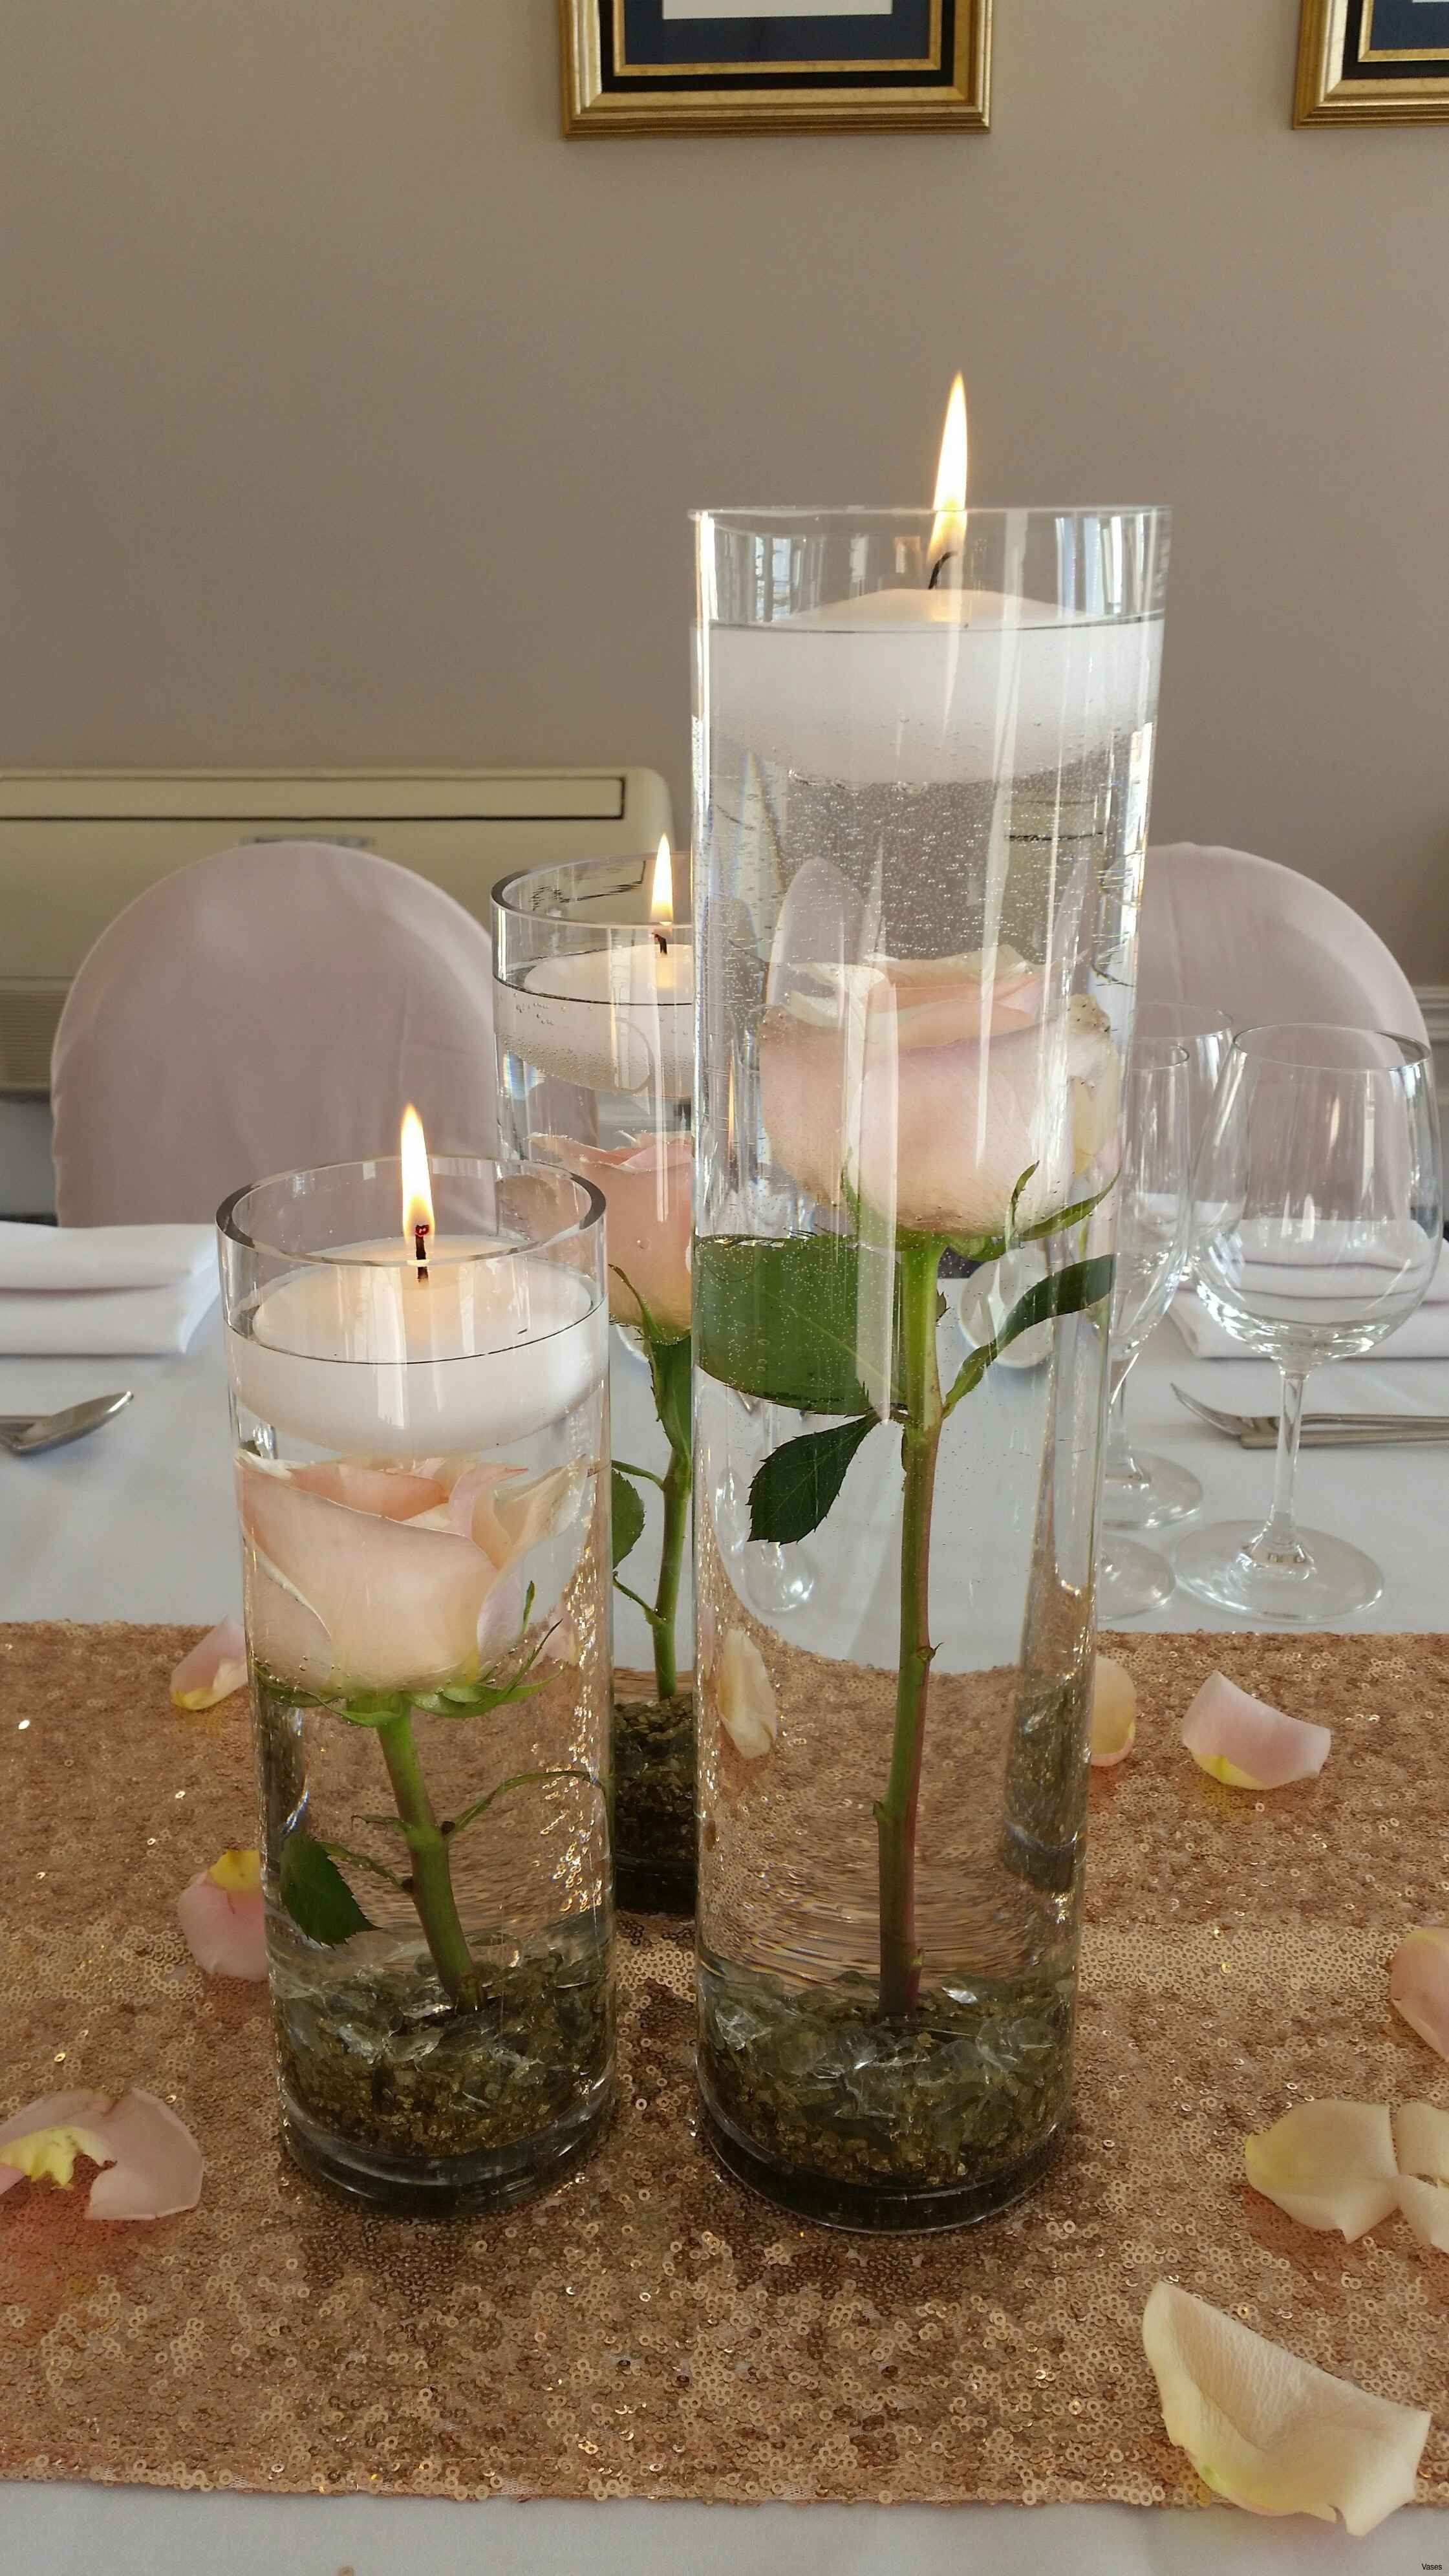 tall cylinder vases of 23 tall cylinder vases the weekly world for tall vase centerpiece ideas vases floating flowers in centerpieces